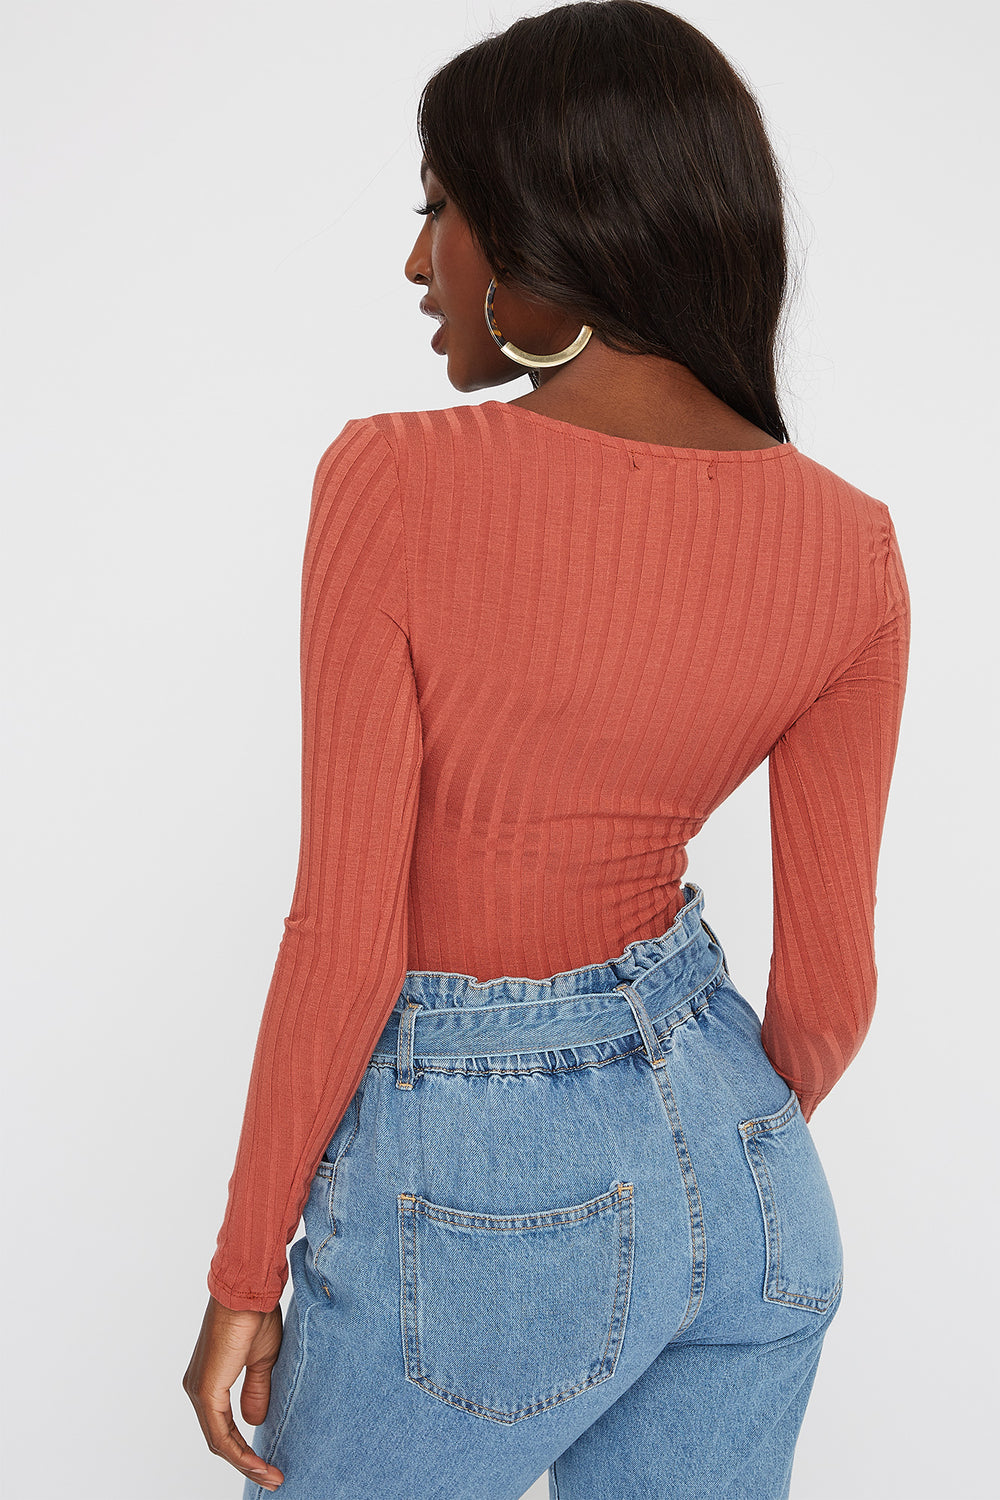 Square Neck Button Long Sleeve Bodysuit Rust